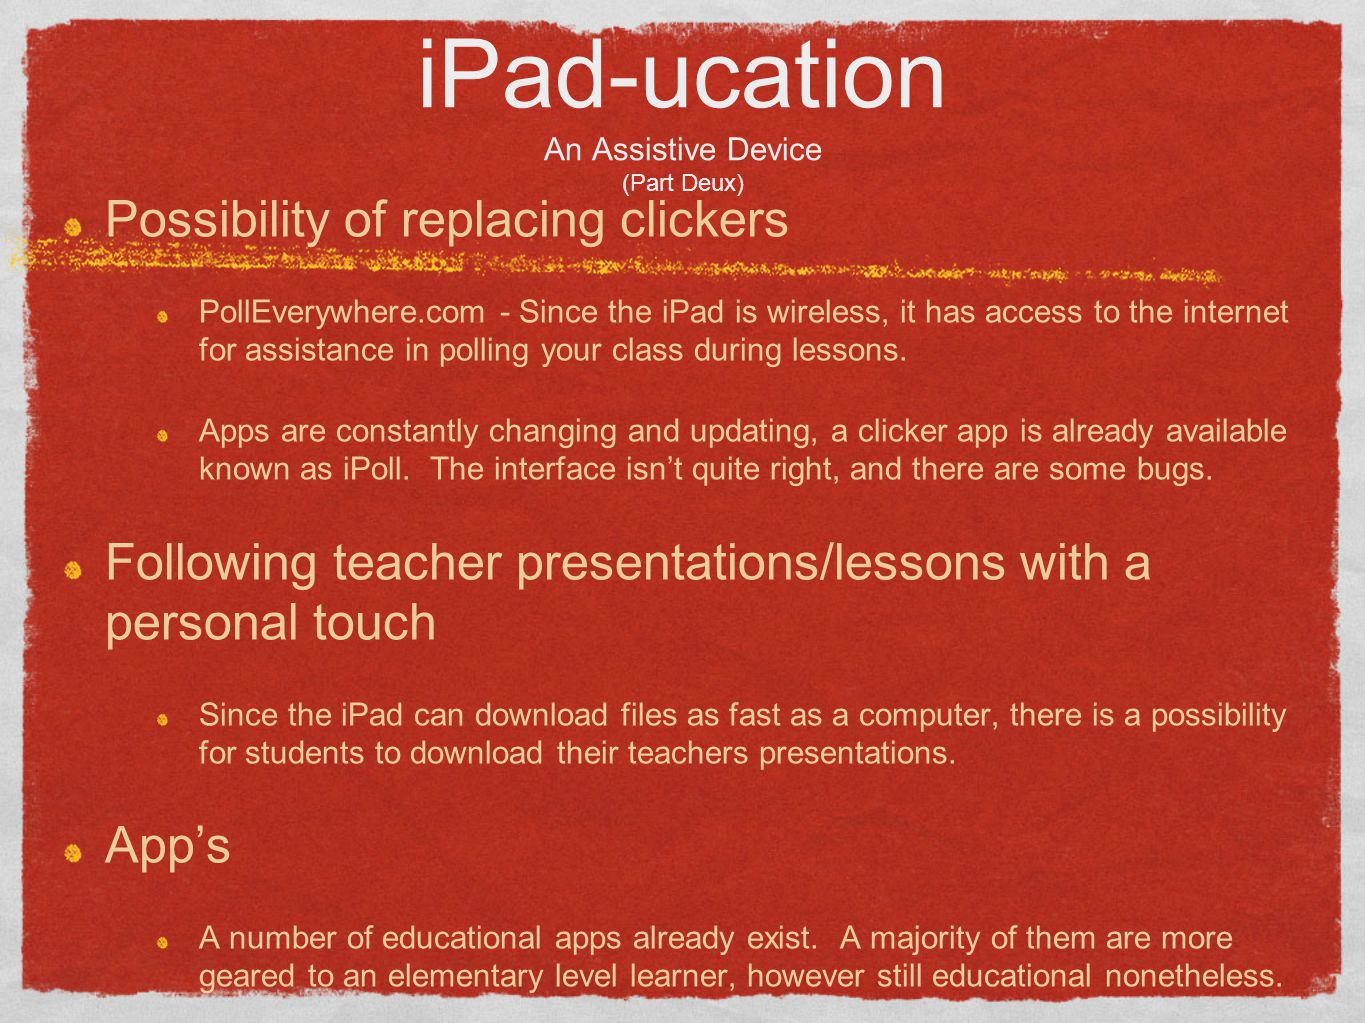 iPad-ucation An Assistive Device (Part Deux) Possibility of replacing clickers PollEverywhere.com - Since the iPad is wireless, it has access to the internet for assistance in polling your class during lessons.